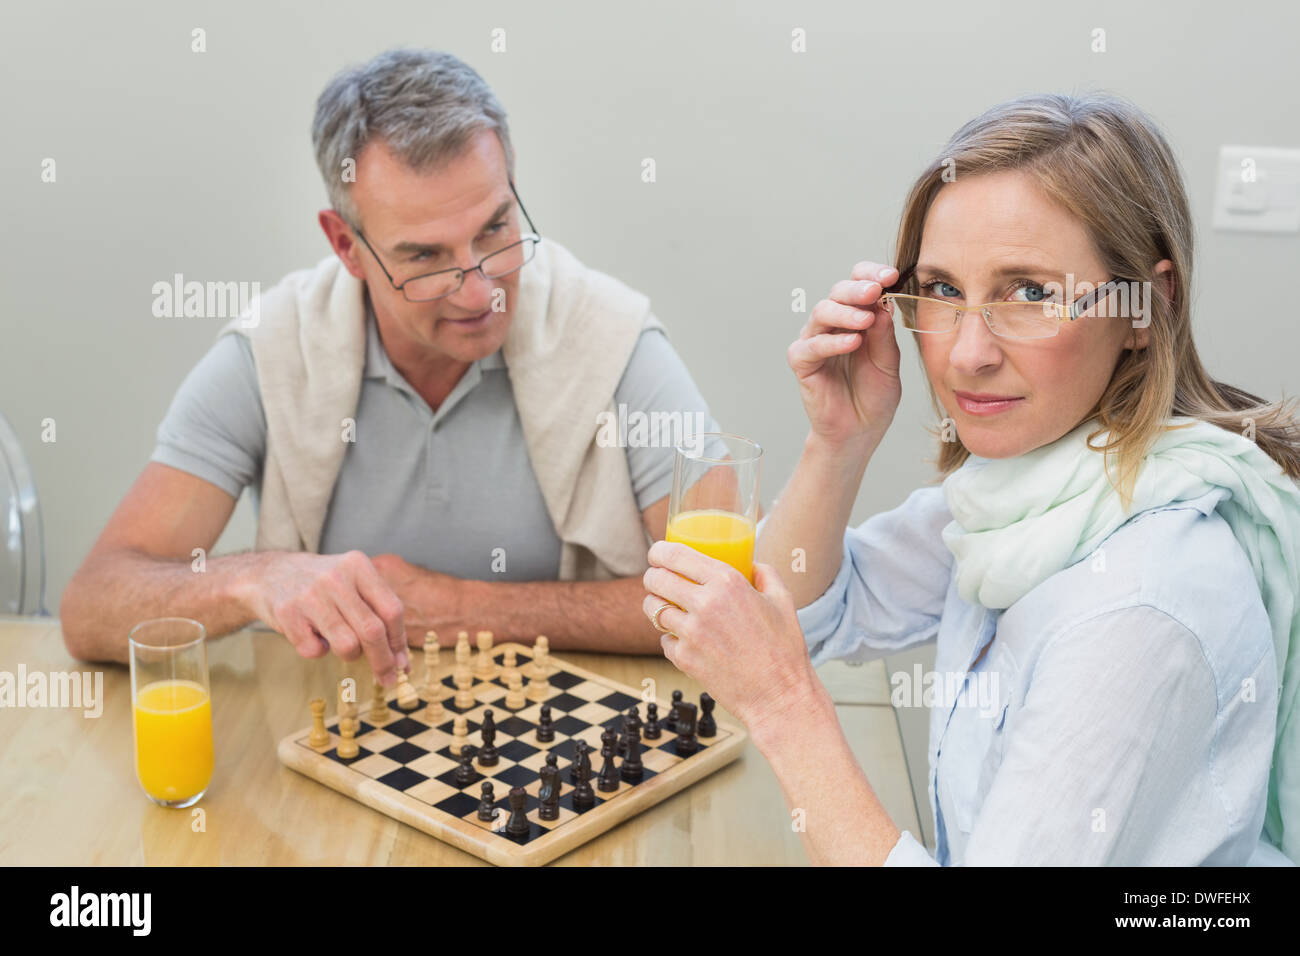 Couple playing chess while having orange juice - Stock Image